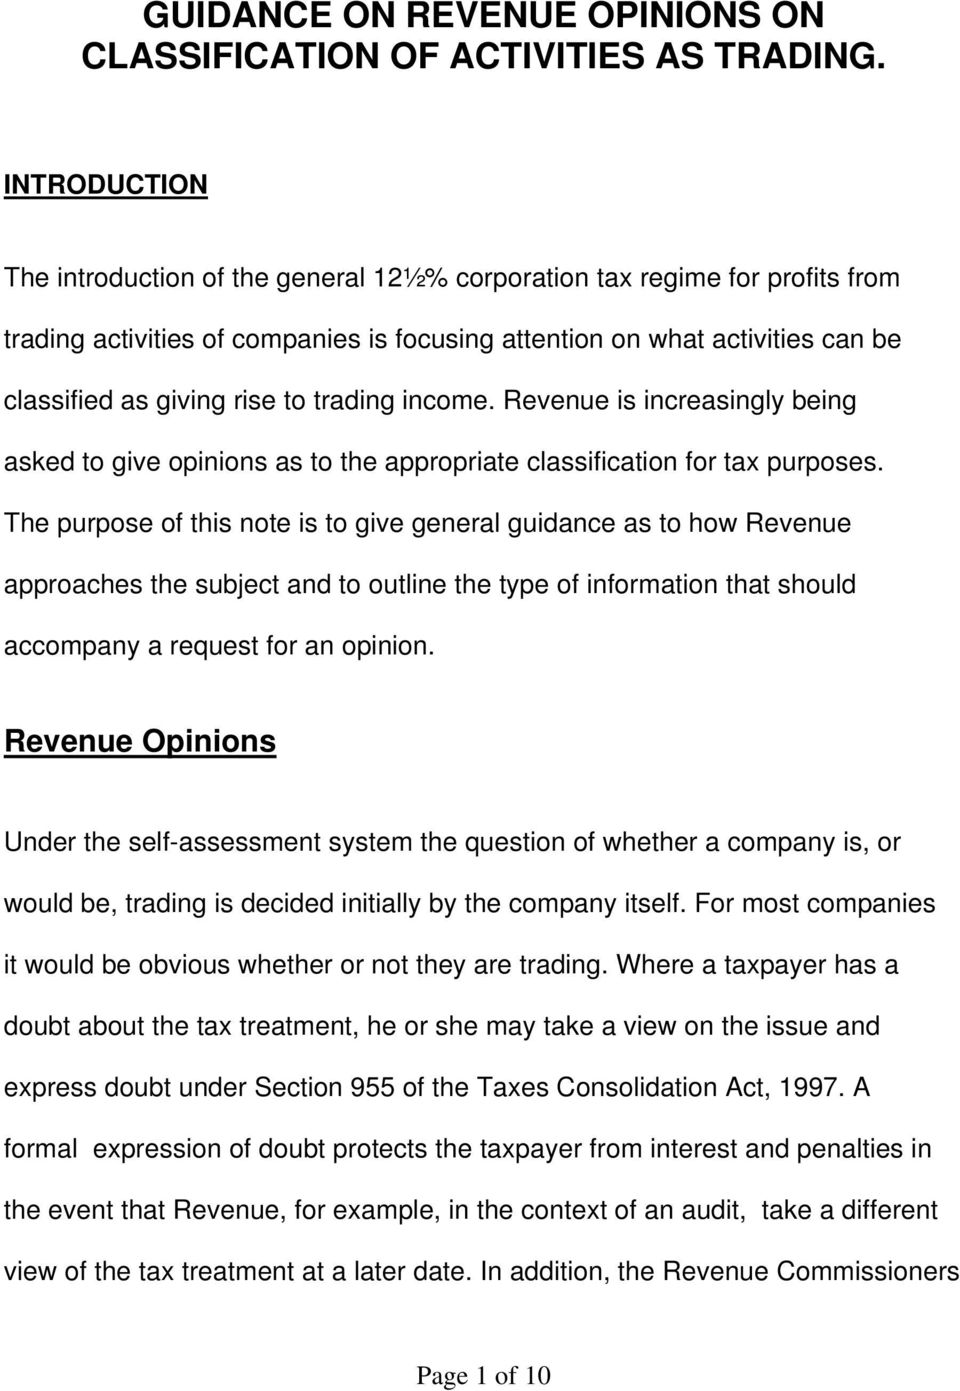 trading income. Revenue is increasingly being asked to give opinions as to the appropriate classification for tax purposes.